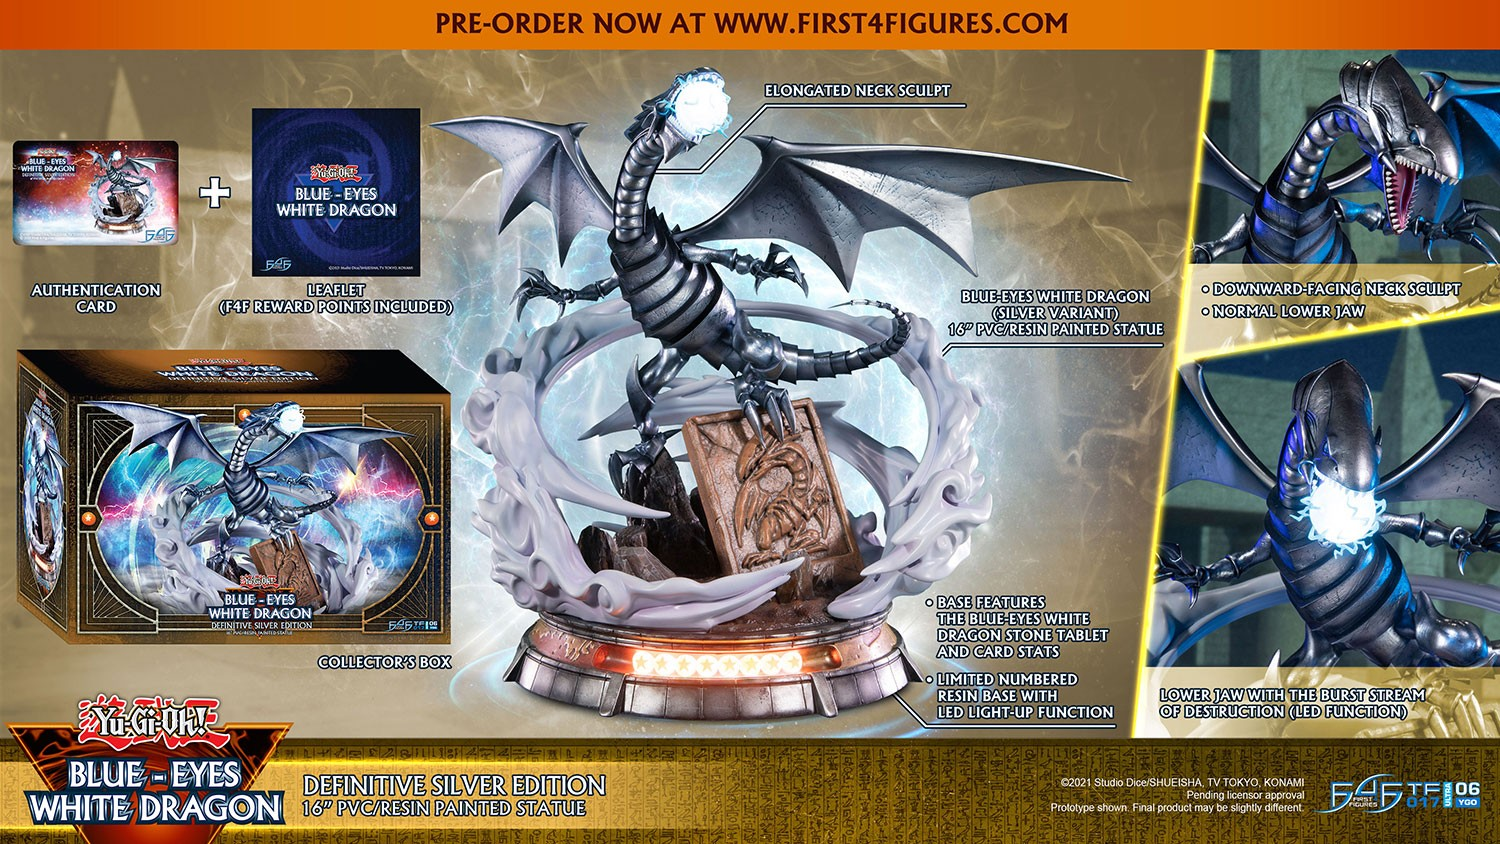 Yu-Gi-Oh! – Blue-Eyes White Dragon (Definitive Silver Edition)